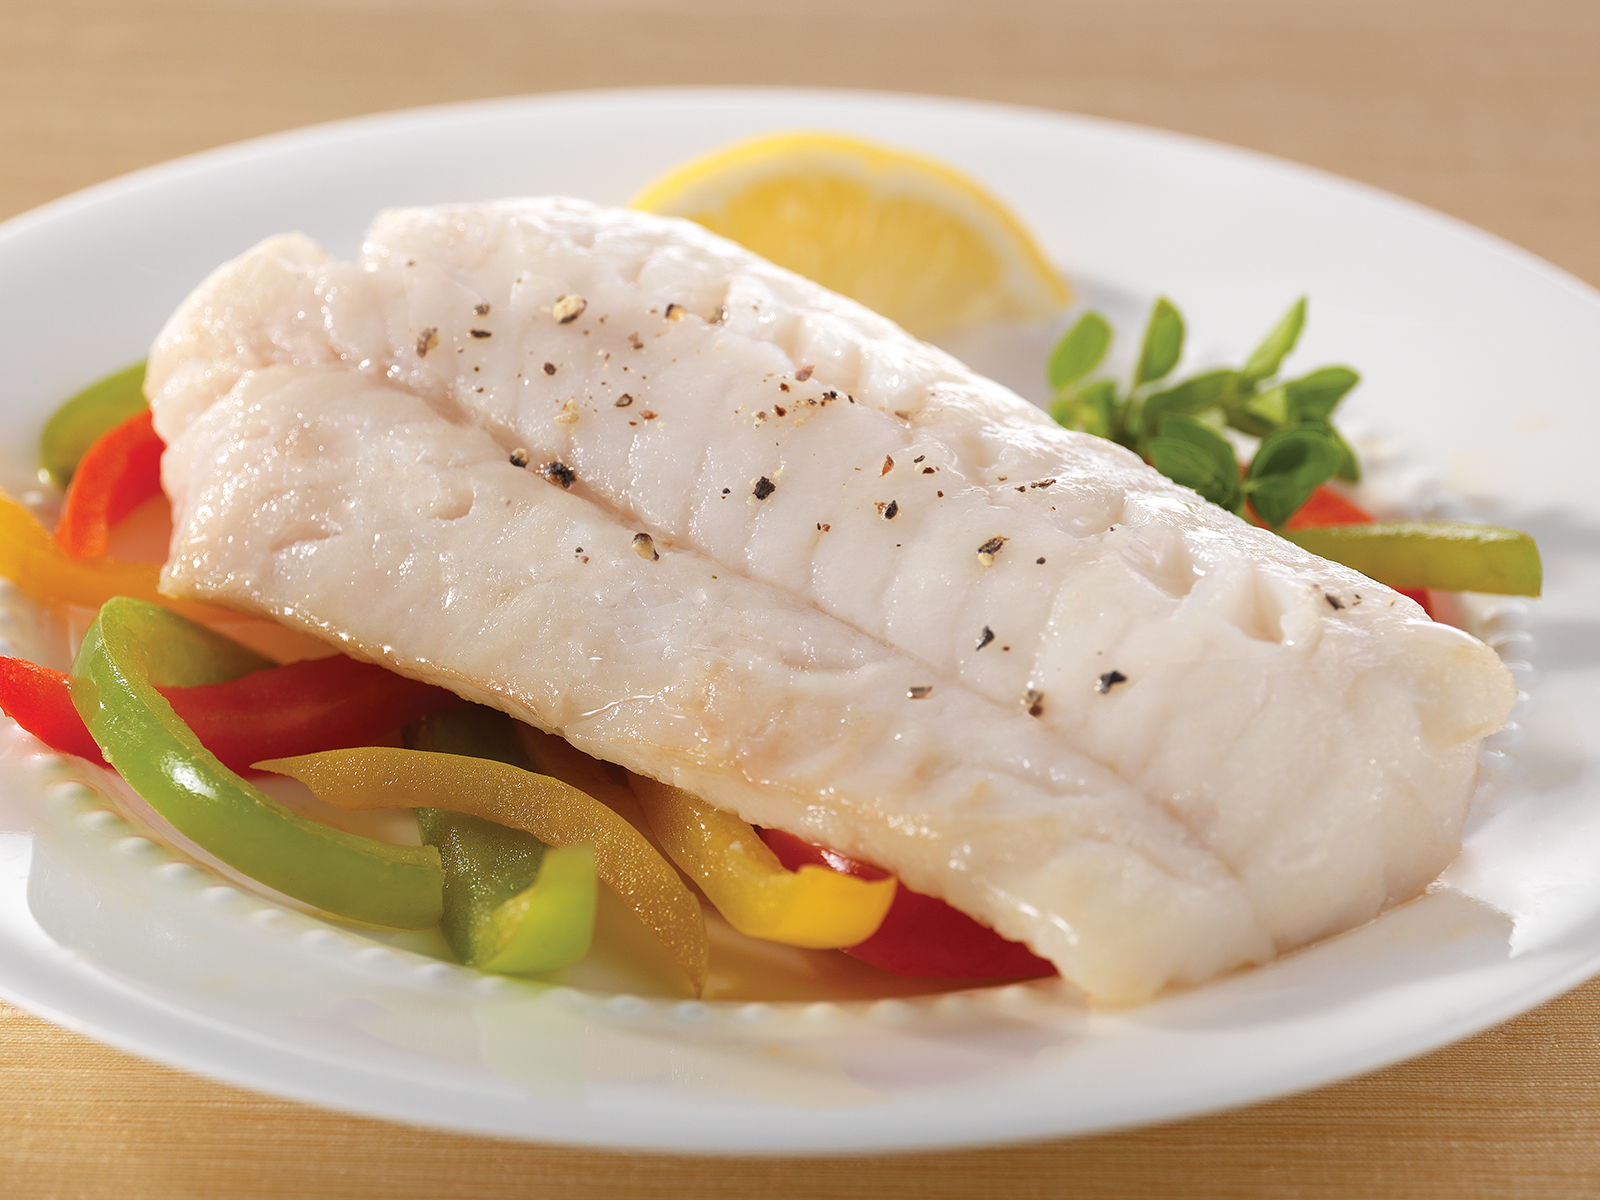 Cod Loin Portions 9 oz Skinless, Boneless,  IQF (1/10 lbs) 419476